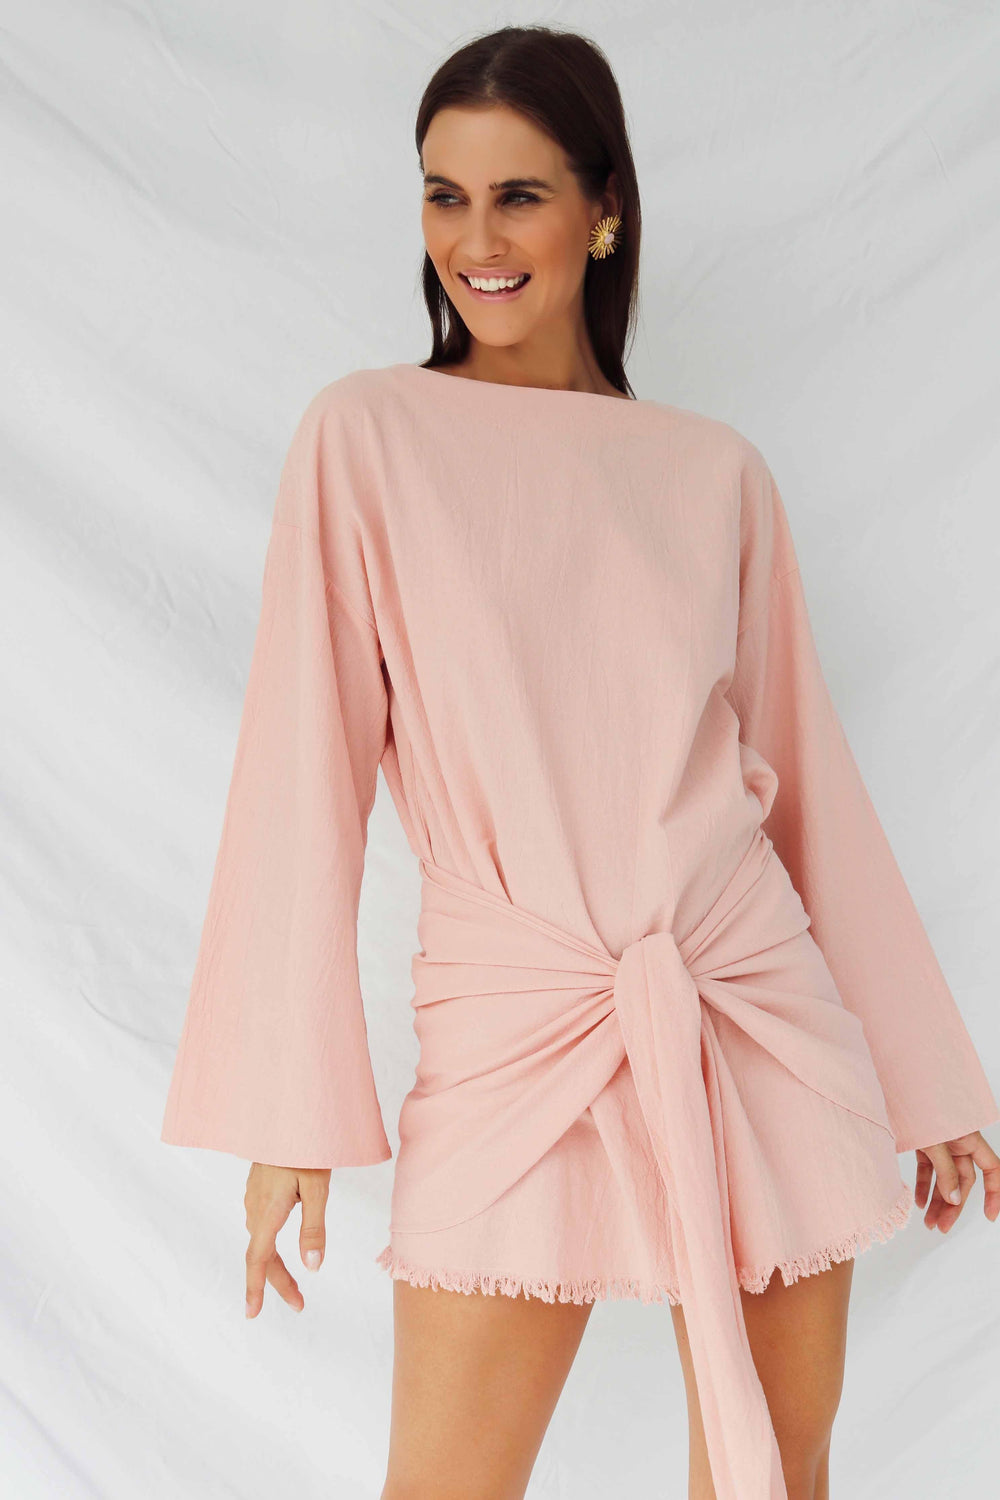 HUA DRESS LONG SLEEVE - PINK (4493781762137)